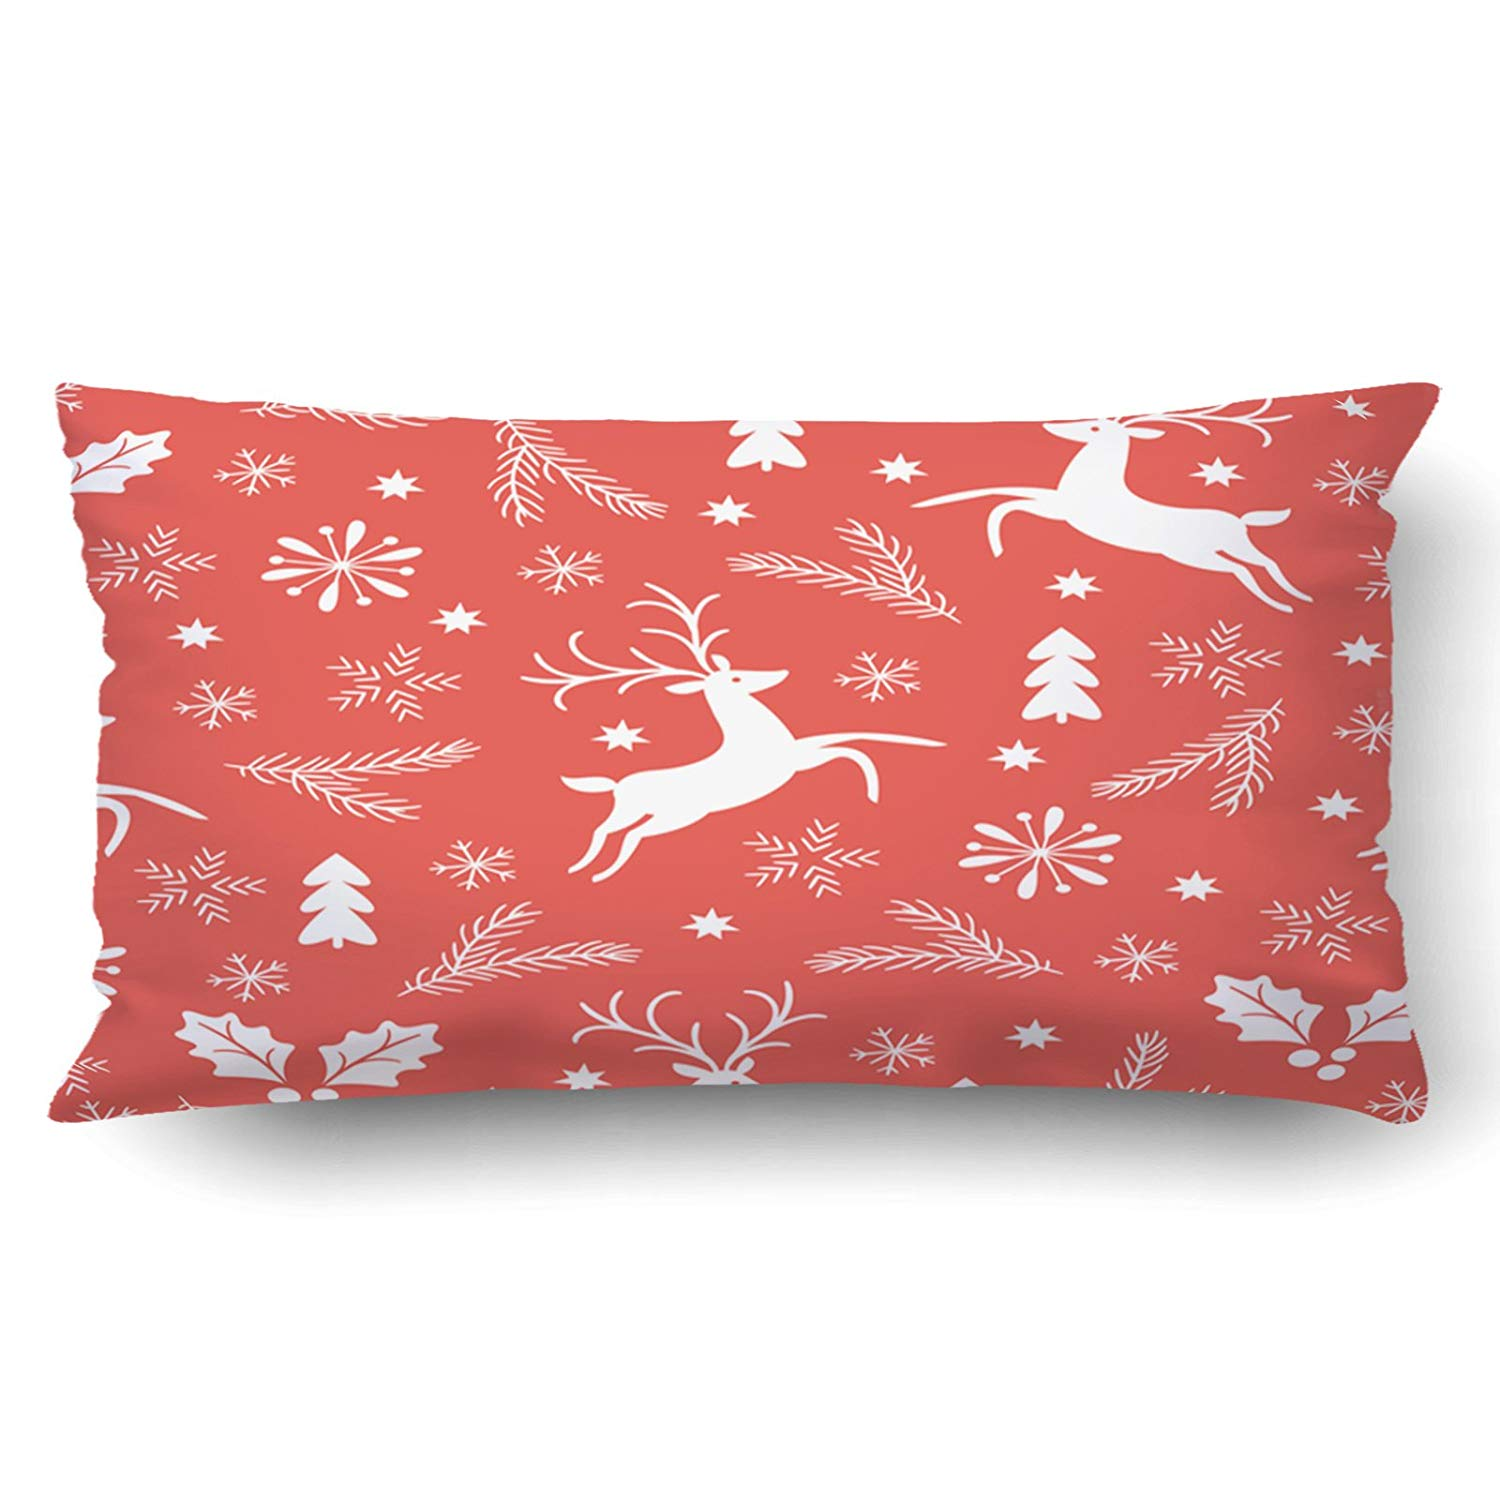 BPBOP Xmas Christmas Pattern White Reindeer Snowflakes Red Pillow Case Cushion Cover Case Throw Pillow Case 20x30 inches